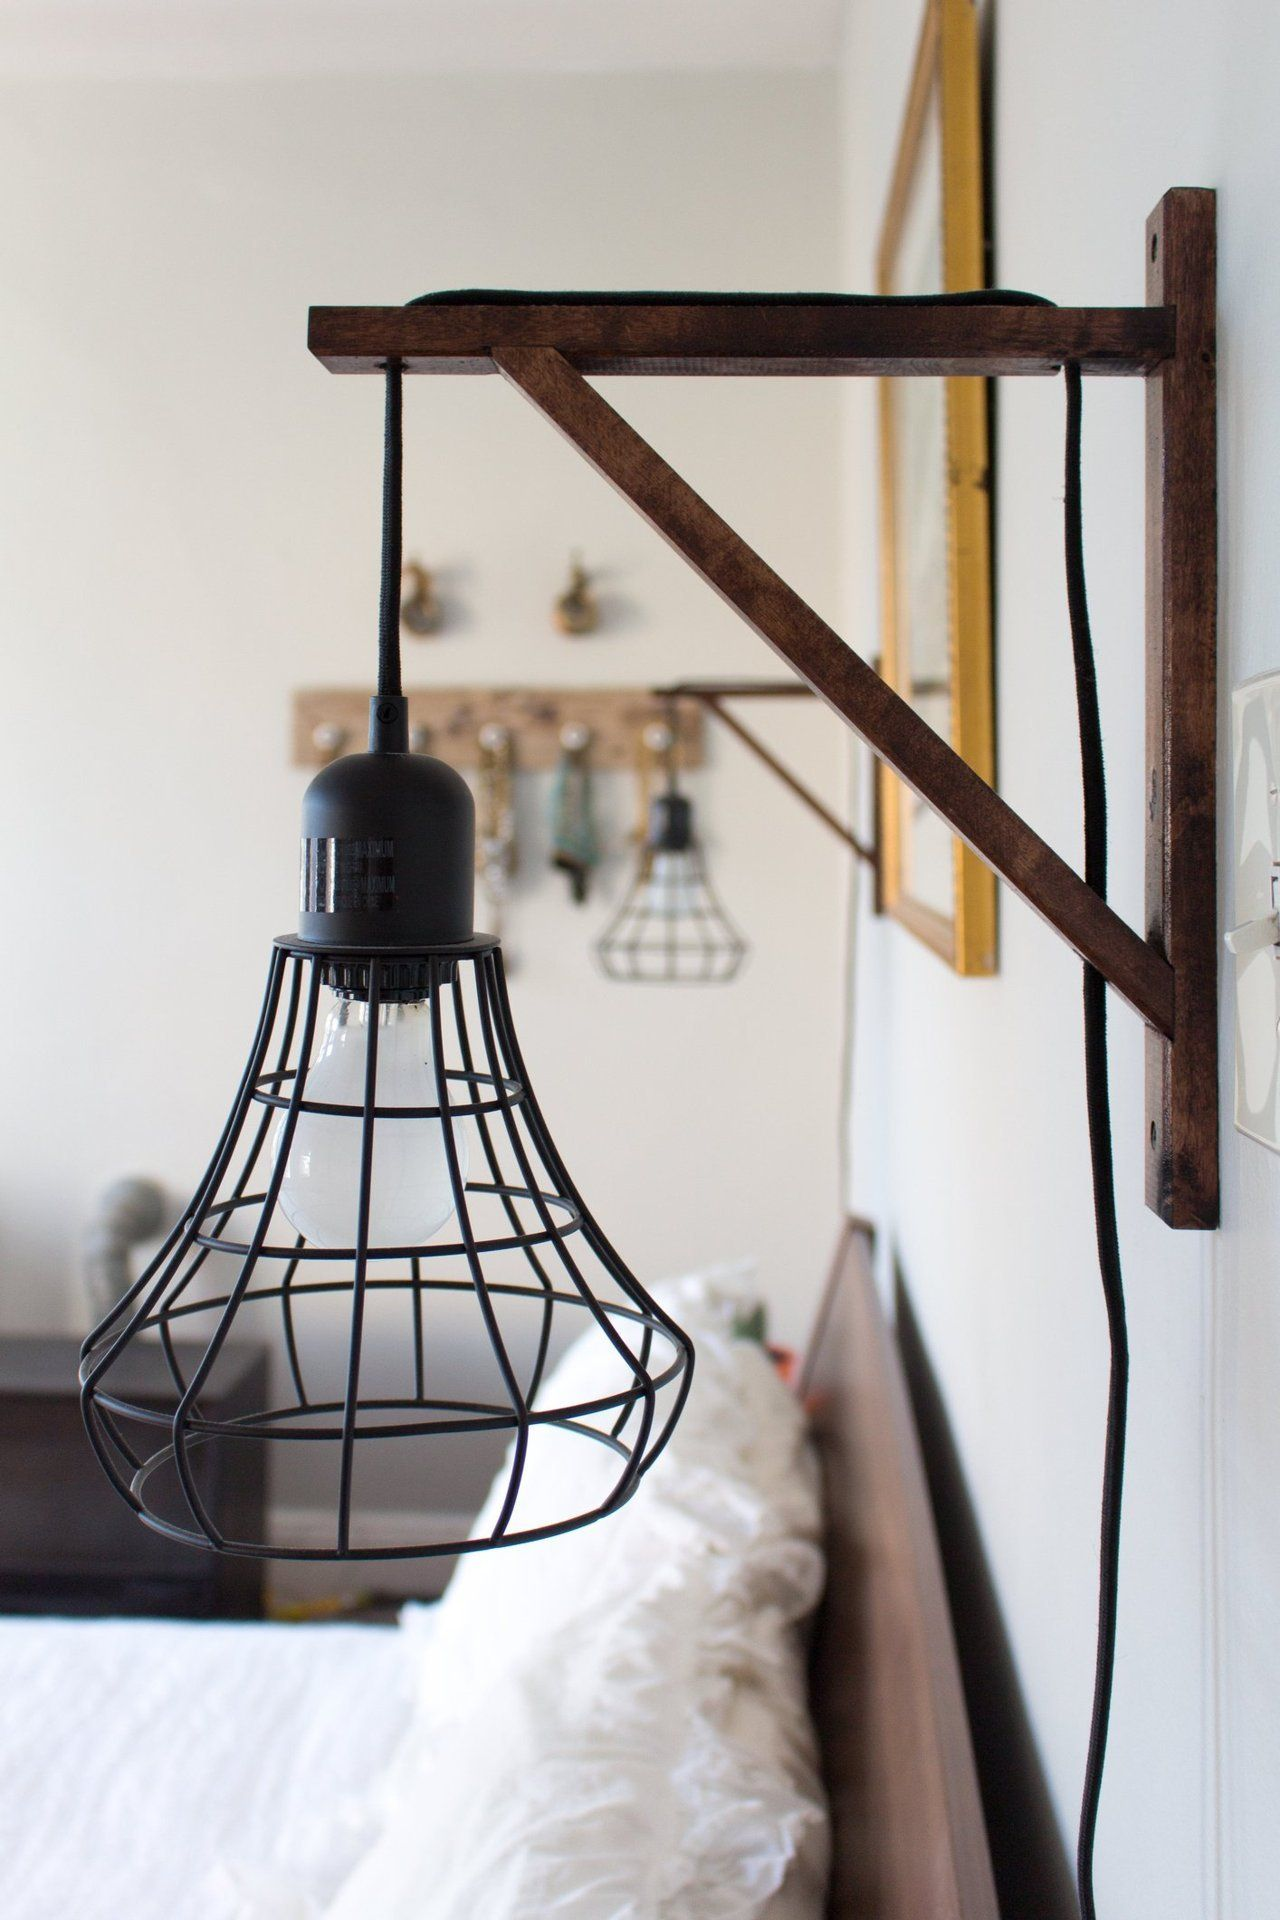 medium resolution of ikea pendant light wired through wooden support taylor alana s carefully crafted hoboken apartment